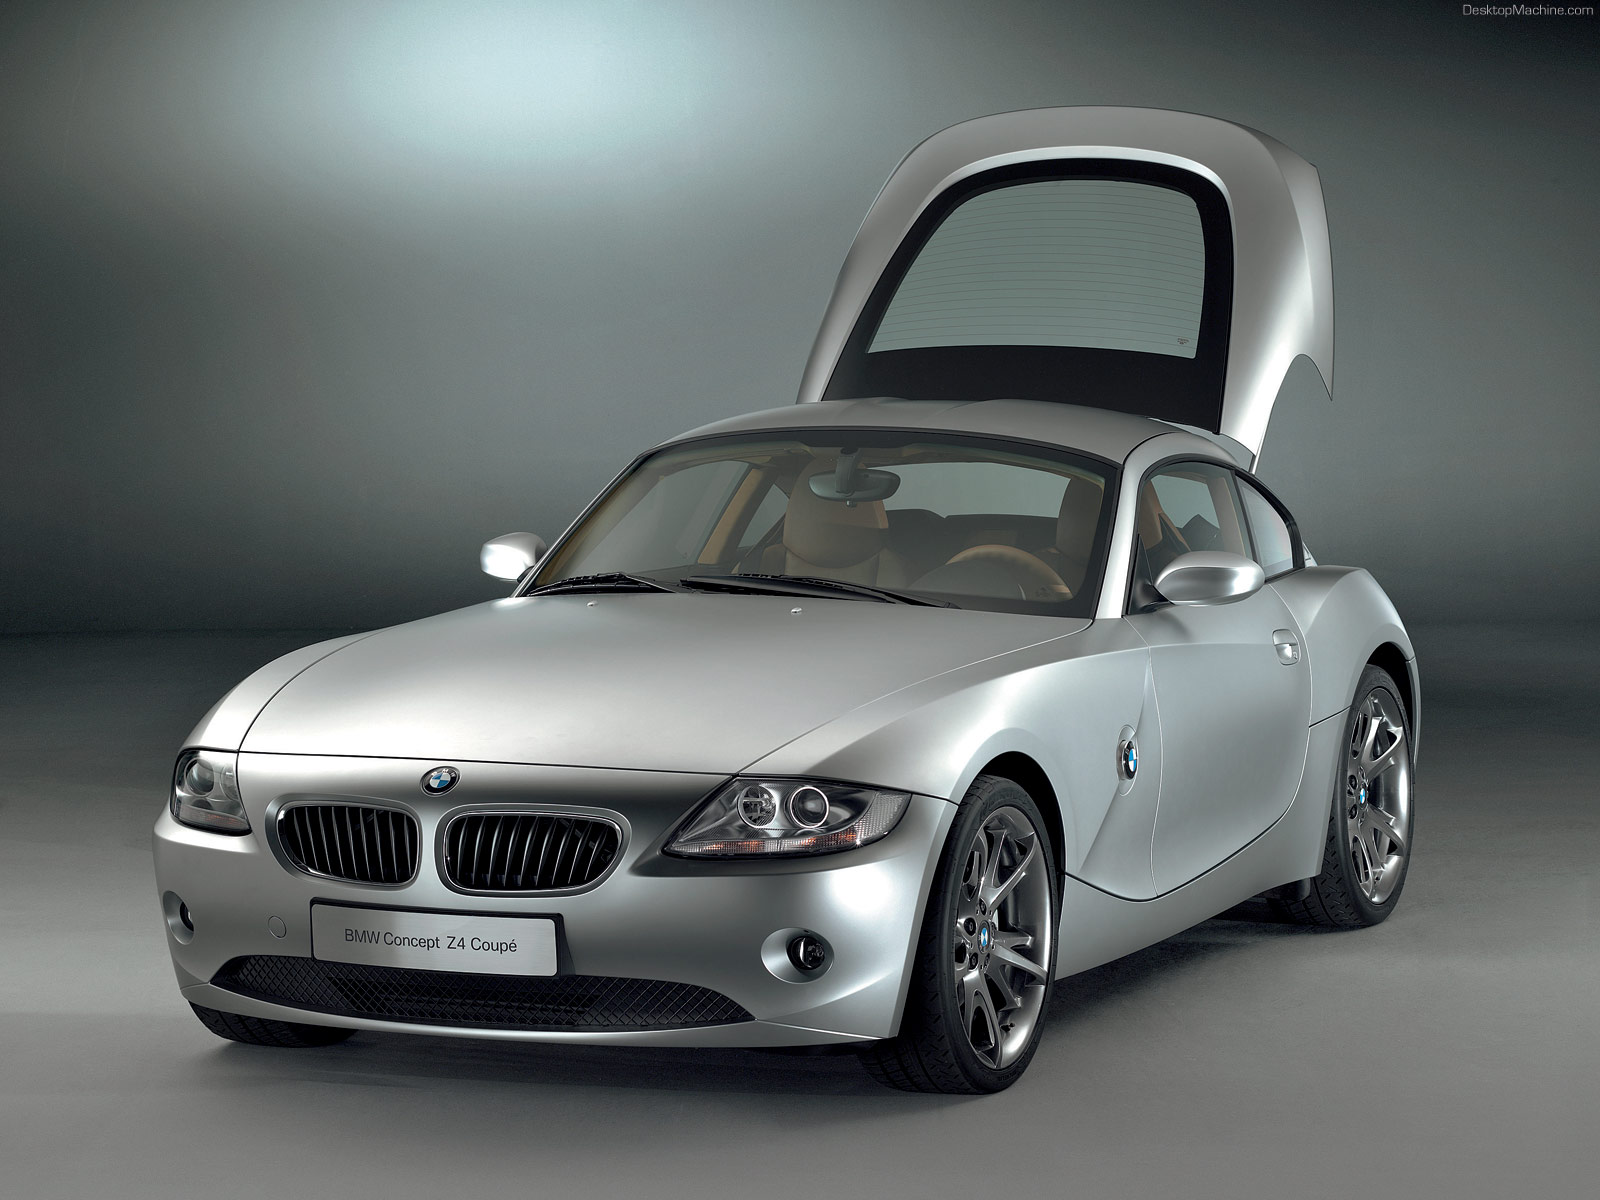 Hd Wallpapers Bmw Car Walpaper